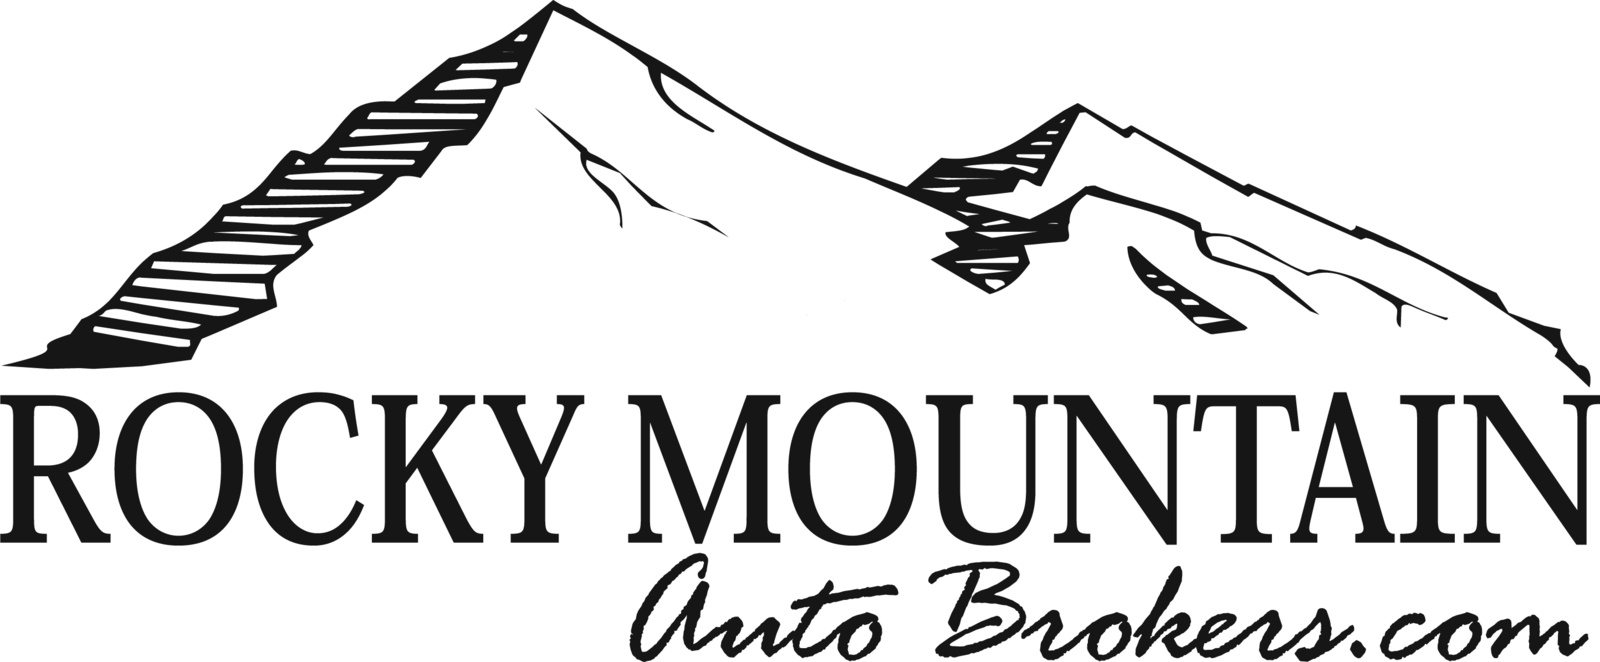 Rocky Mountain Auto Brokers Inc Colorado Springs Co Read